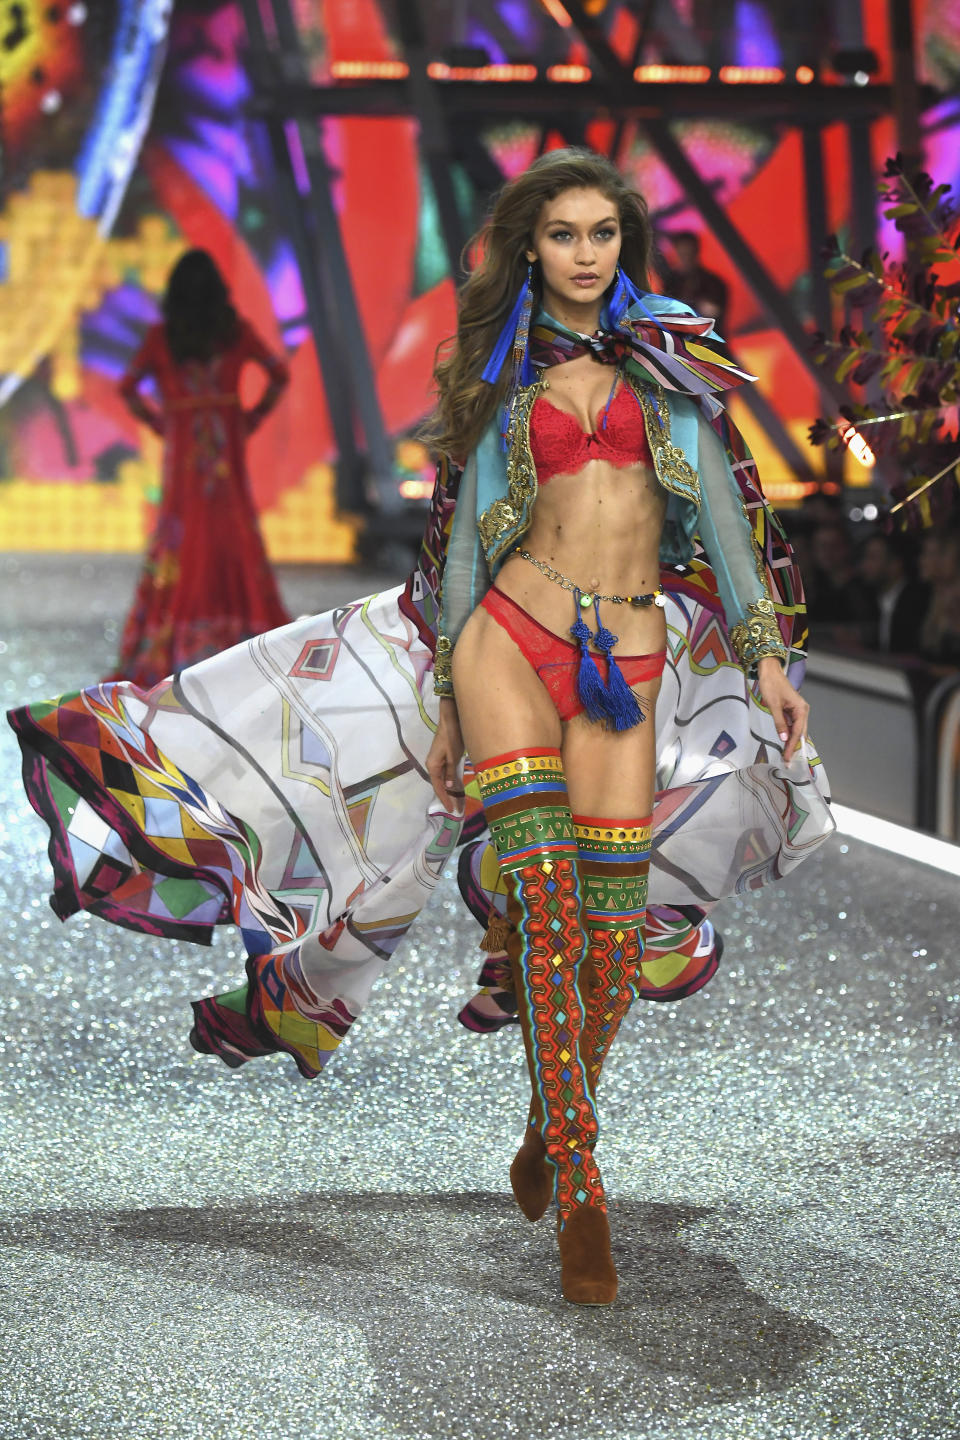 Legs for days at the 2016 Victoria's Secret Fashion Show.